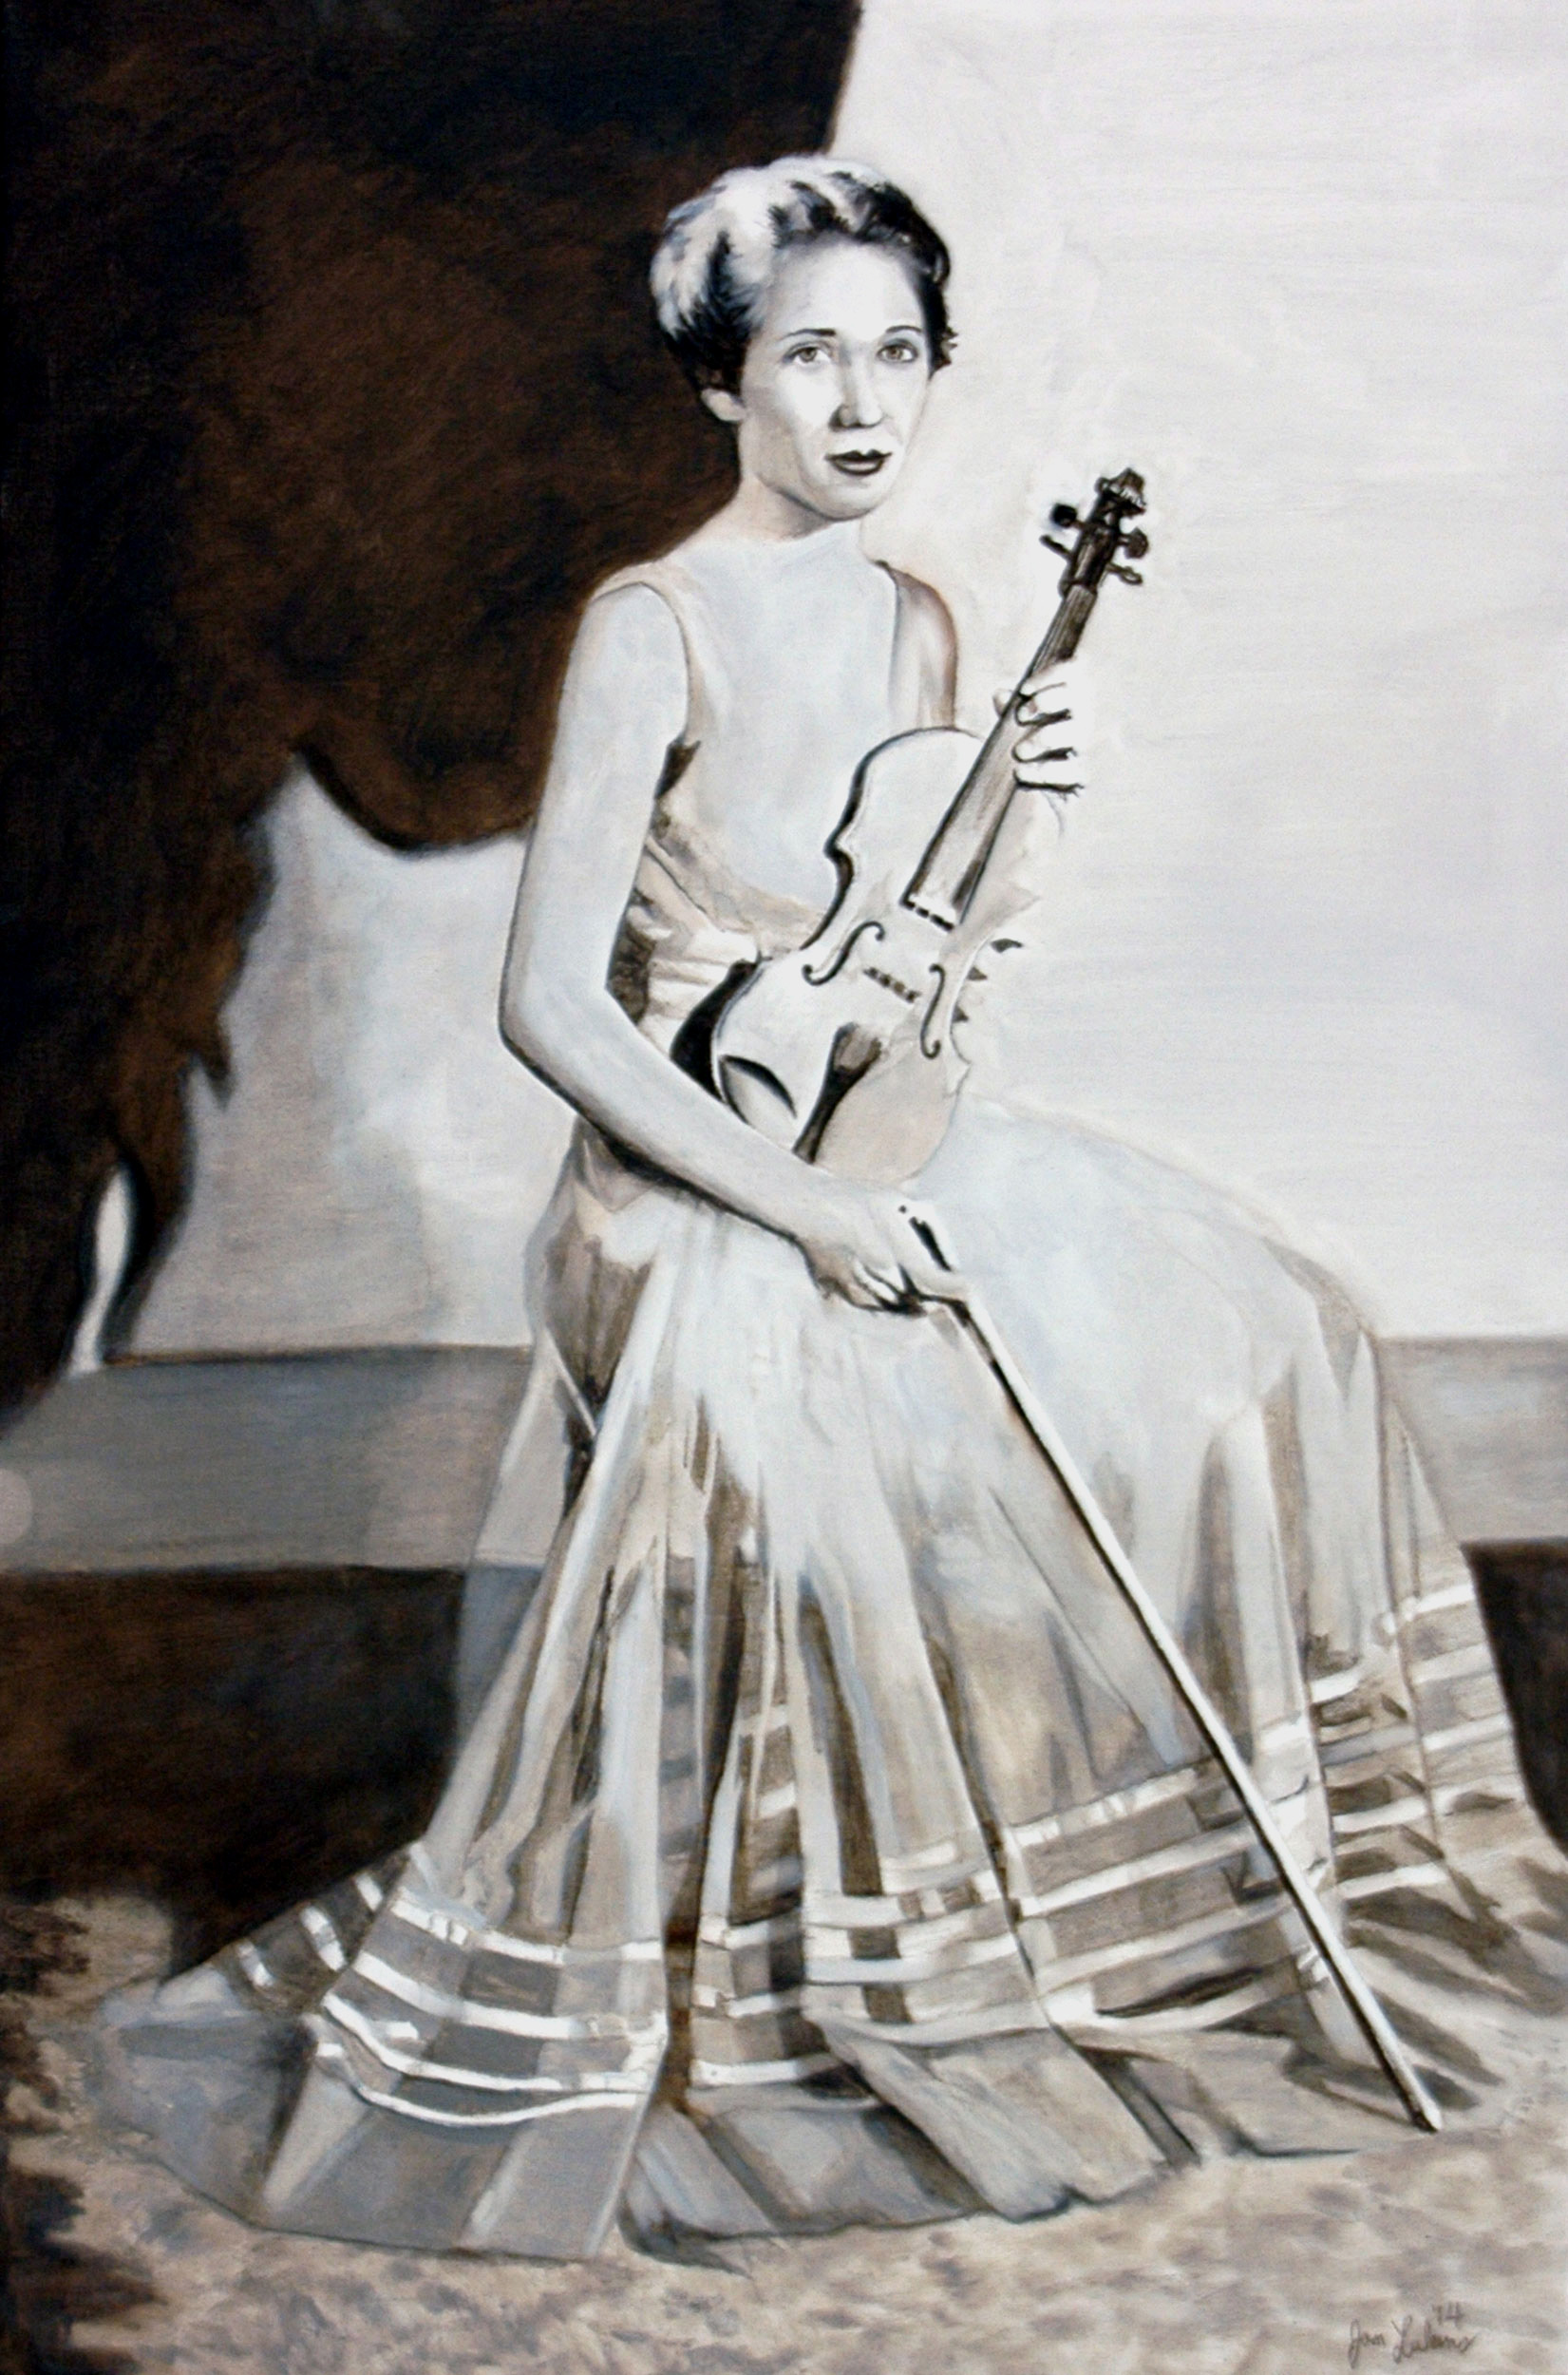 The Violinist 1941